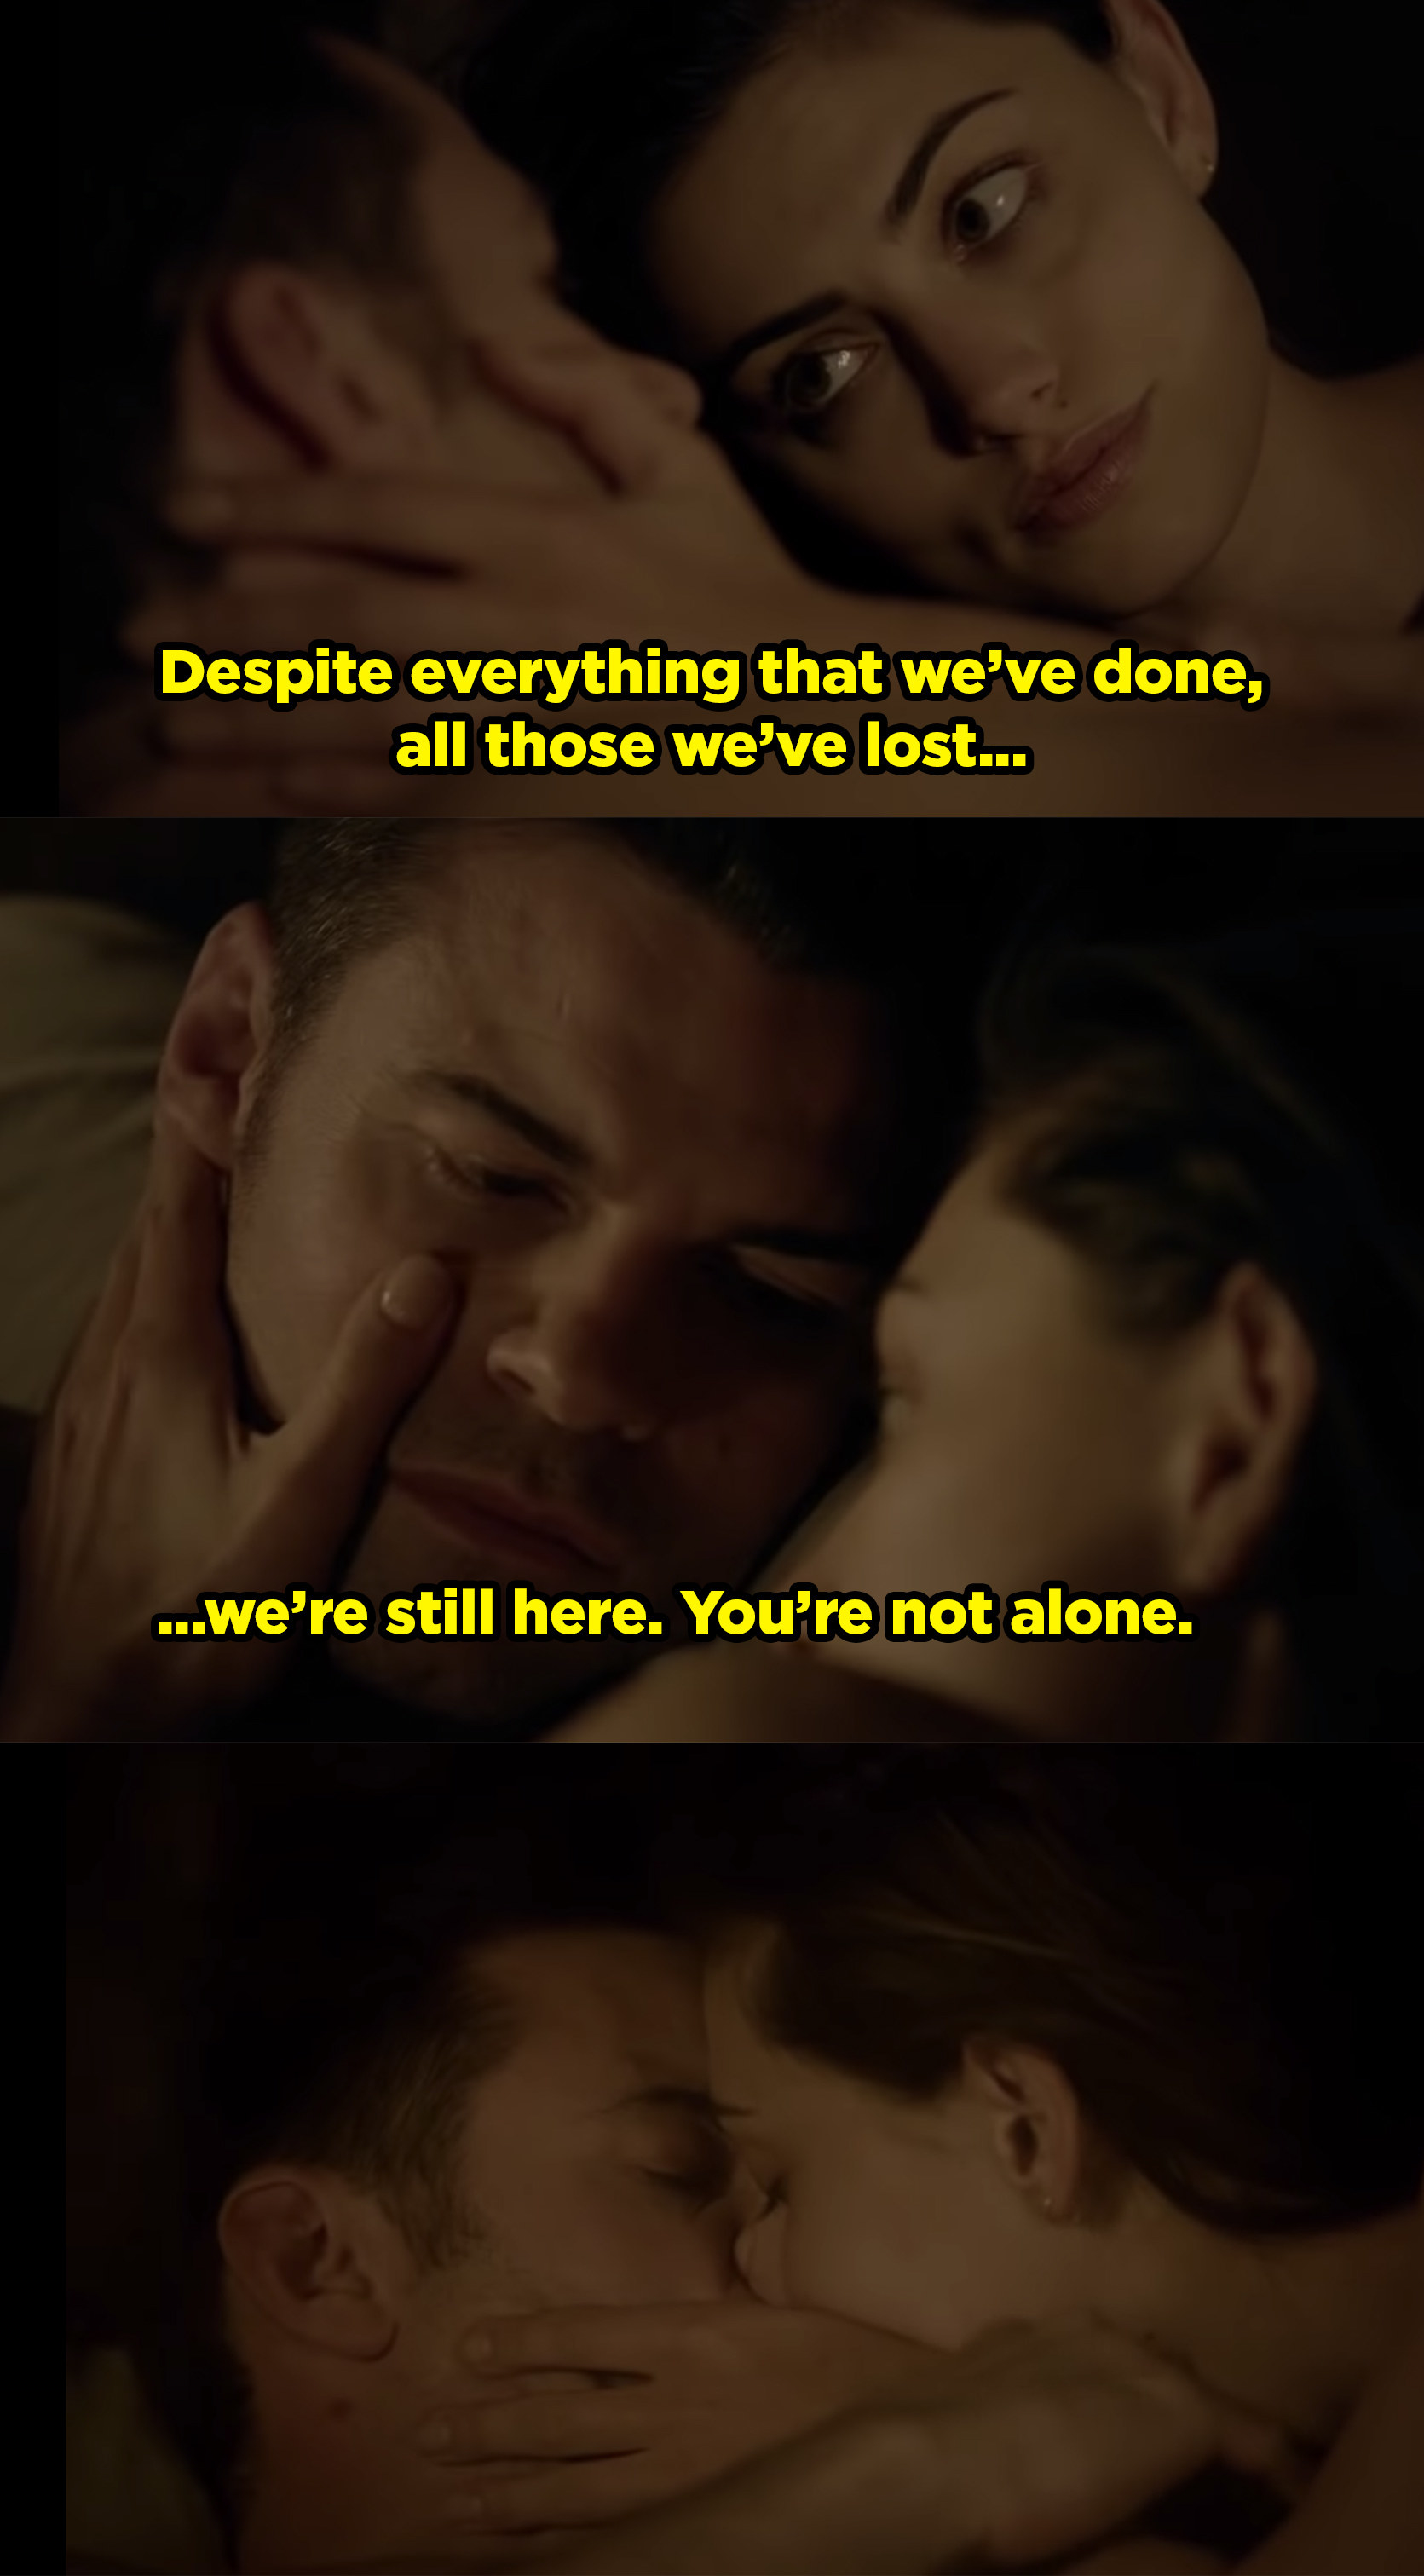 Hayley and Elijah lying in bed, and she tells him that despite everything they've done and all the people they've lost, he is not alone.